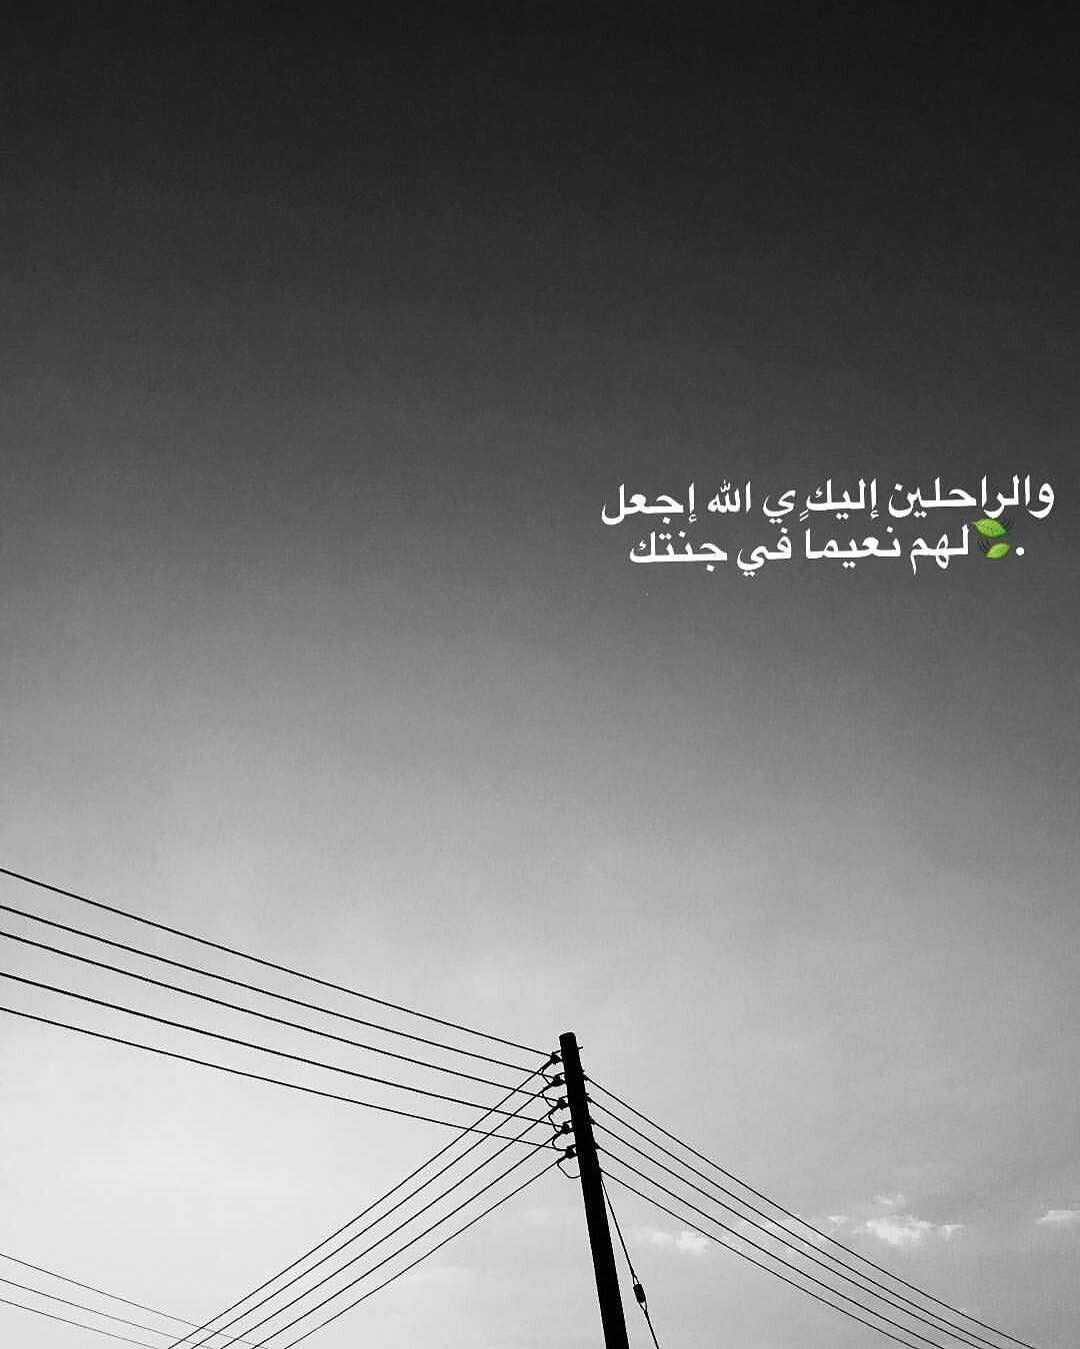 Pin By Bedoor On عبارات In 2020 Beautiful Arabic Words Arabic Quotes Places To Visit